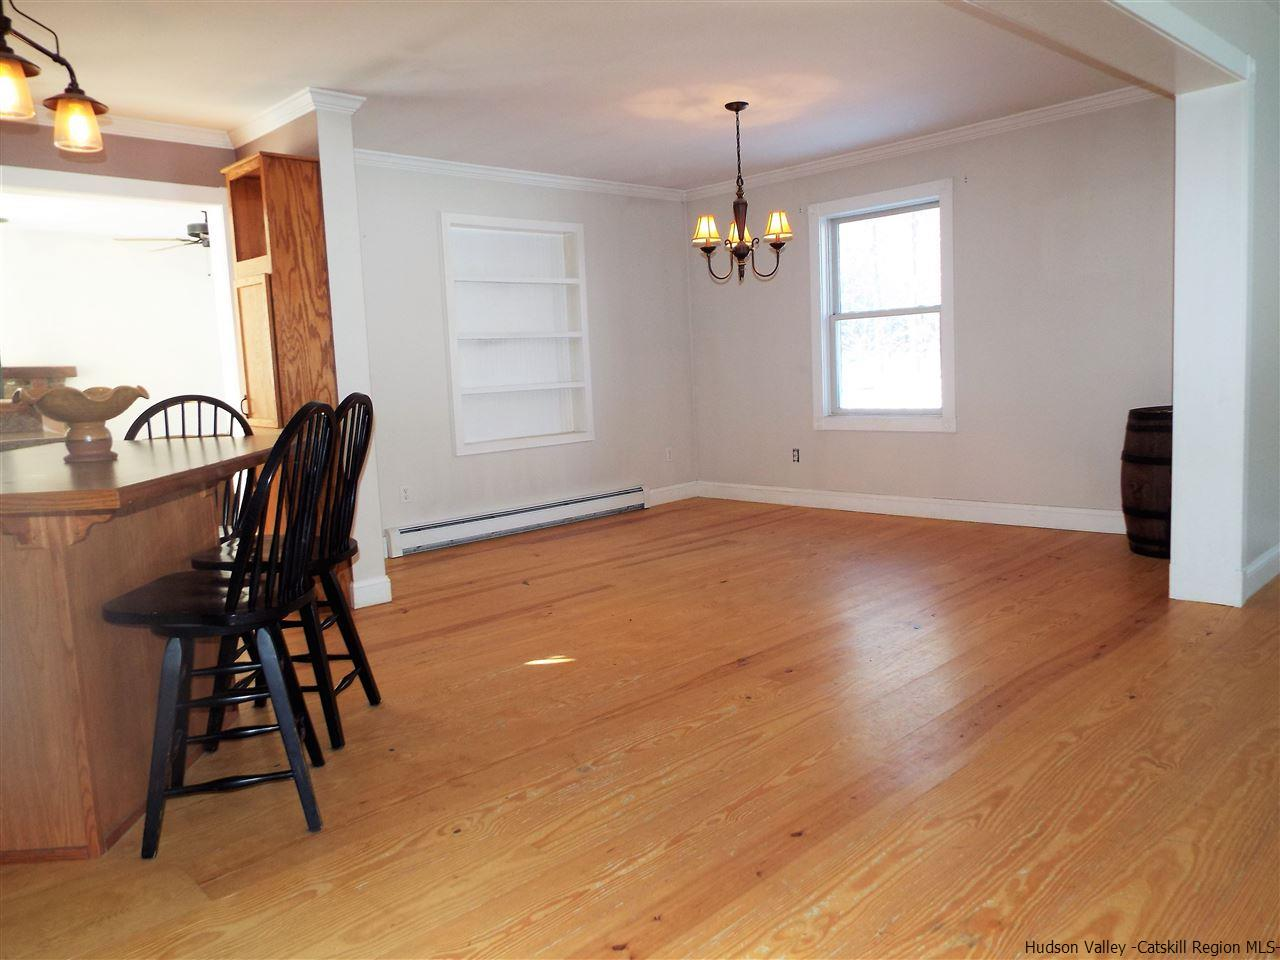 Additional photo for property listing at 41 DENNISTON DRIVE 41 DENNISTON DRIVE Saugerties, New York 12477 United States